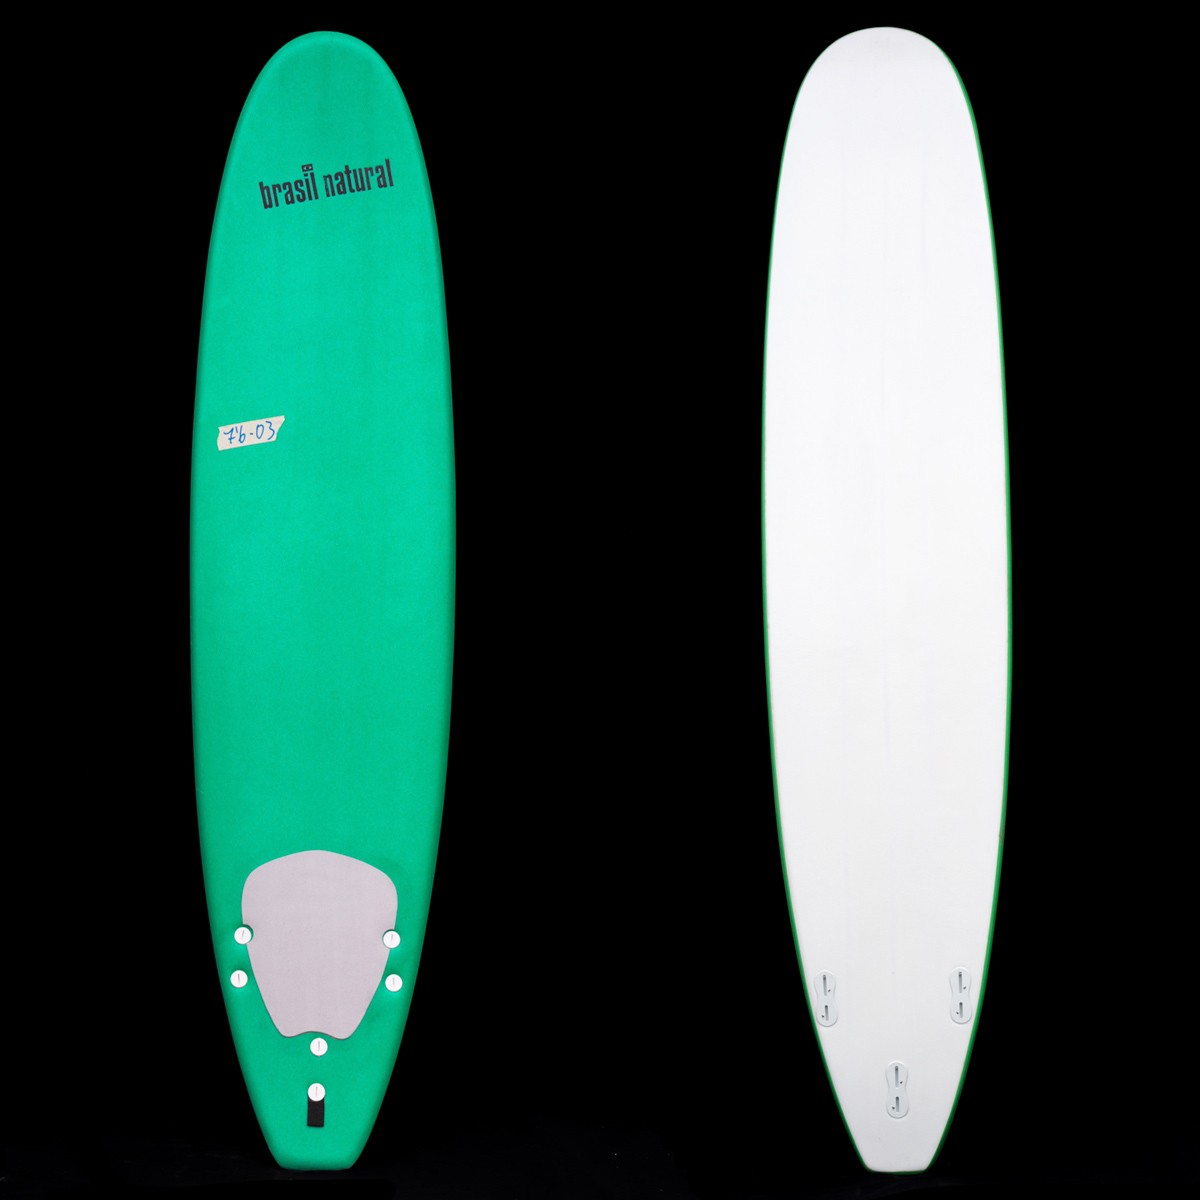 Prancha de surf fun board 7.6 - OUTLET 03